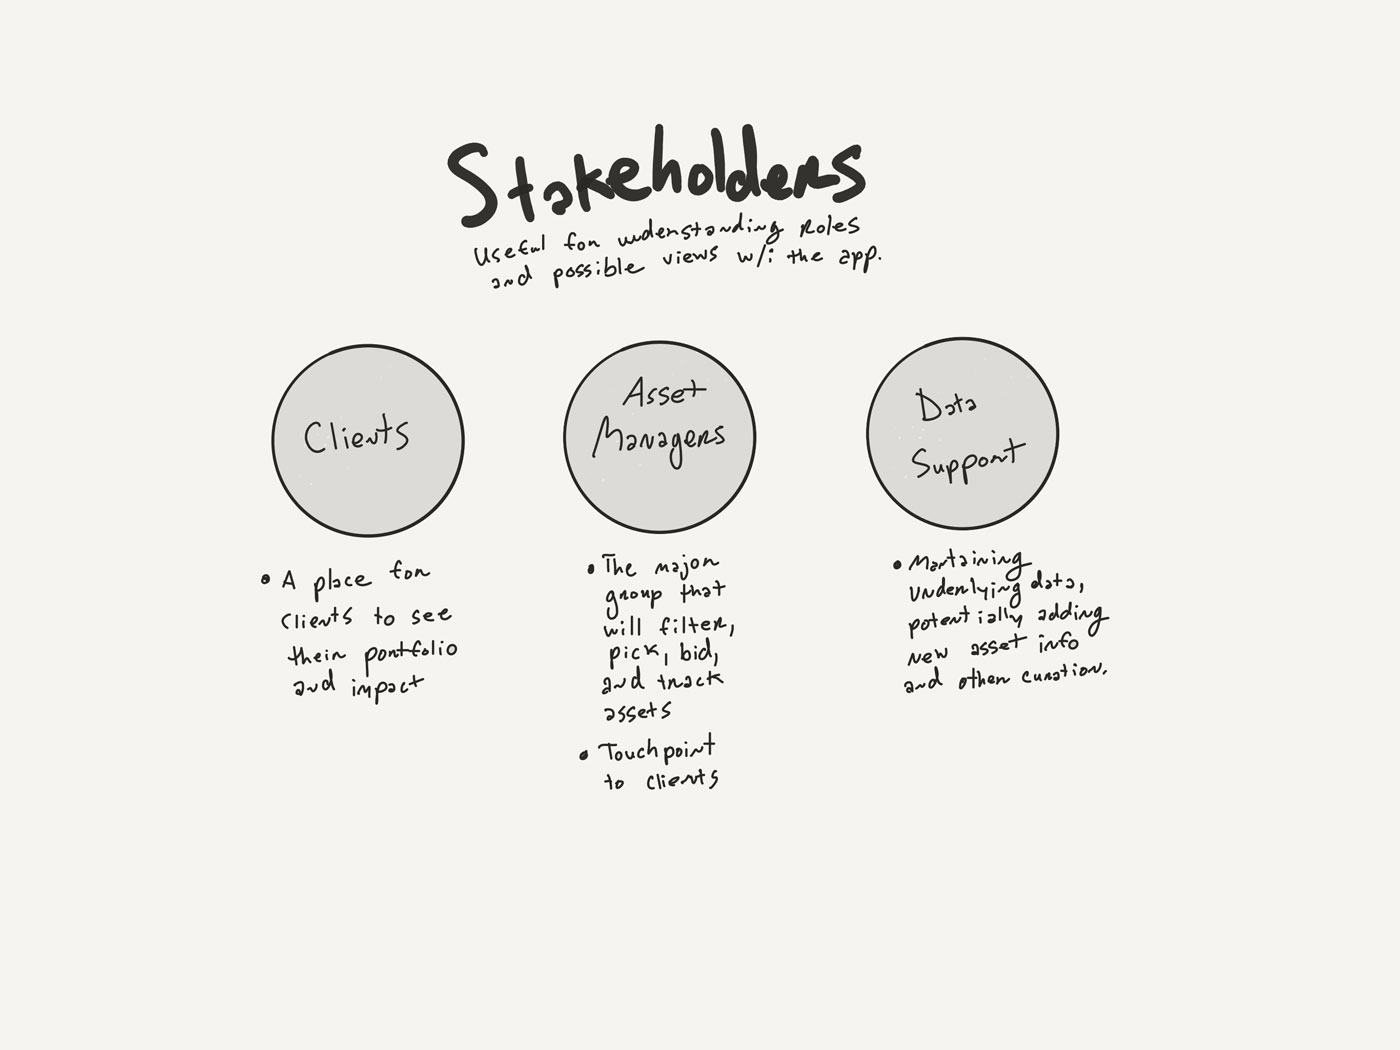 Defining the major stakeholders